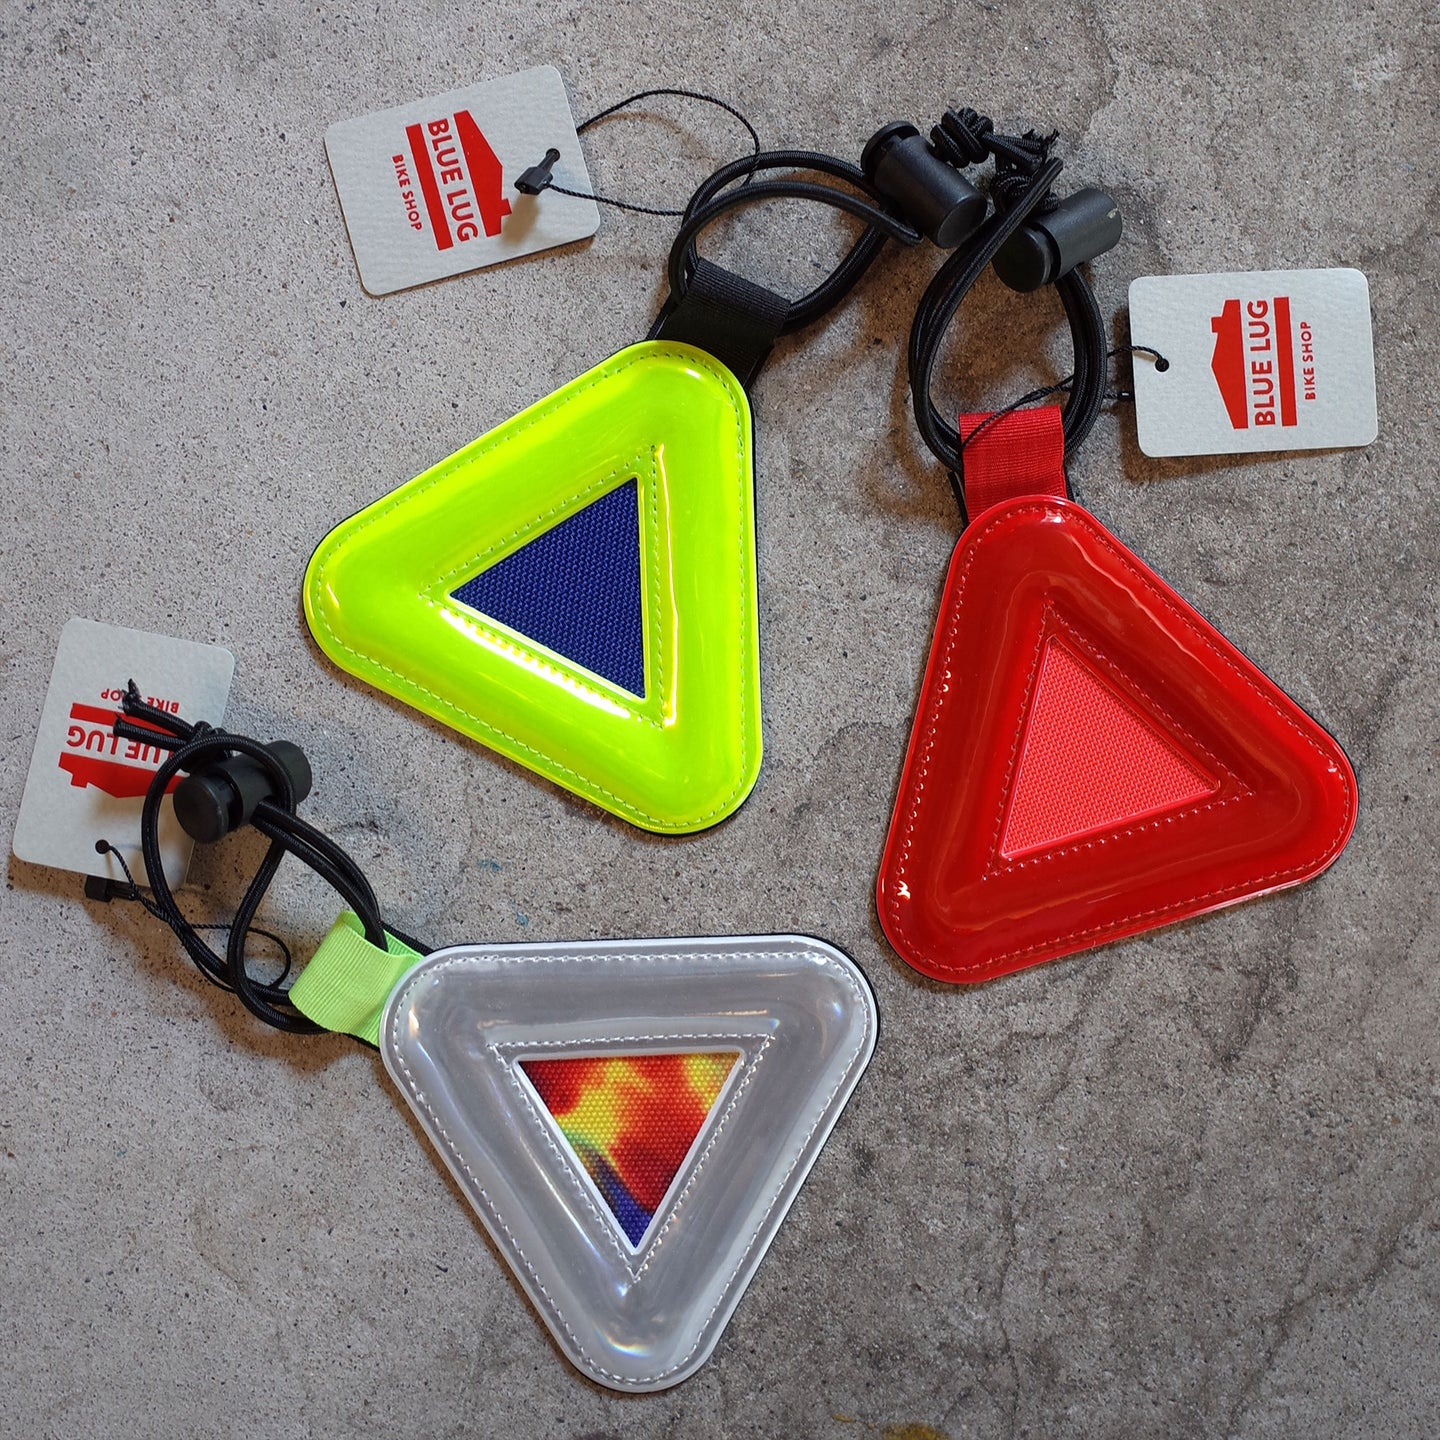 Blue Lug Triangle Bike Reflector